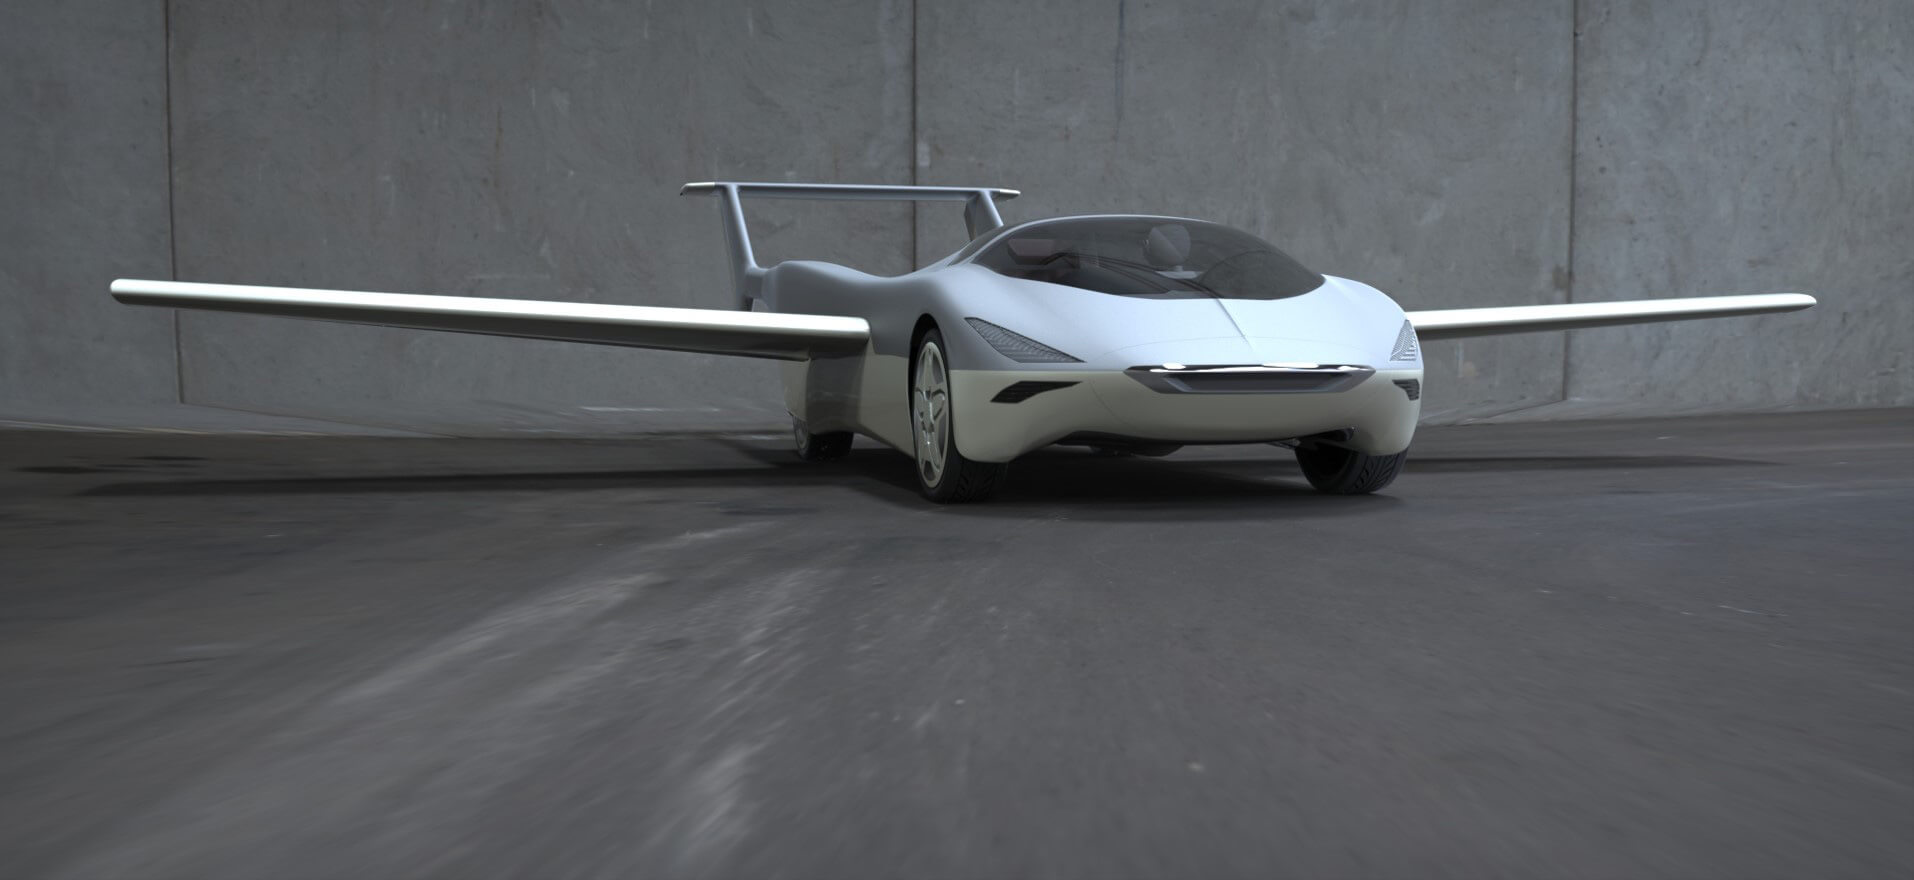 Visualisation of the AirCar with its wings deployed | AirCar | Klein Vision | STIRworld